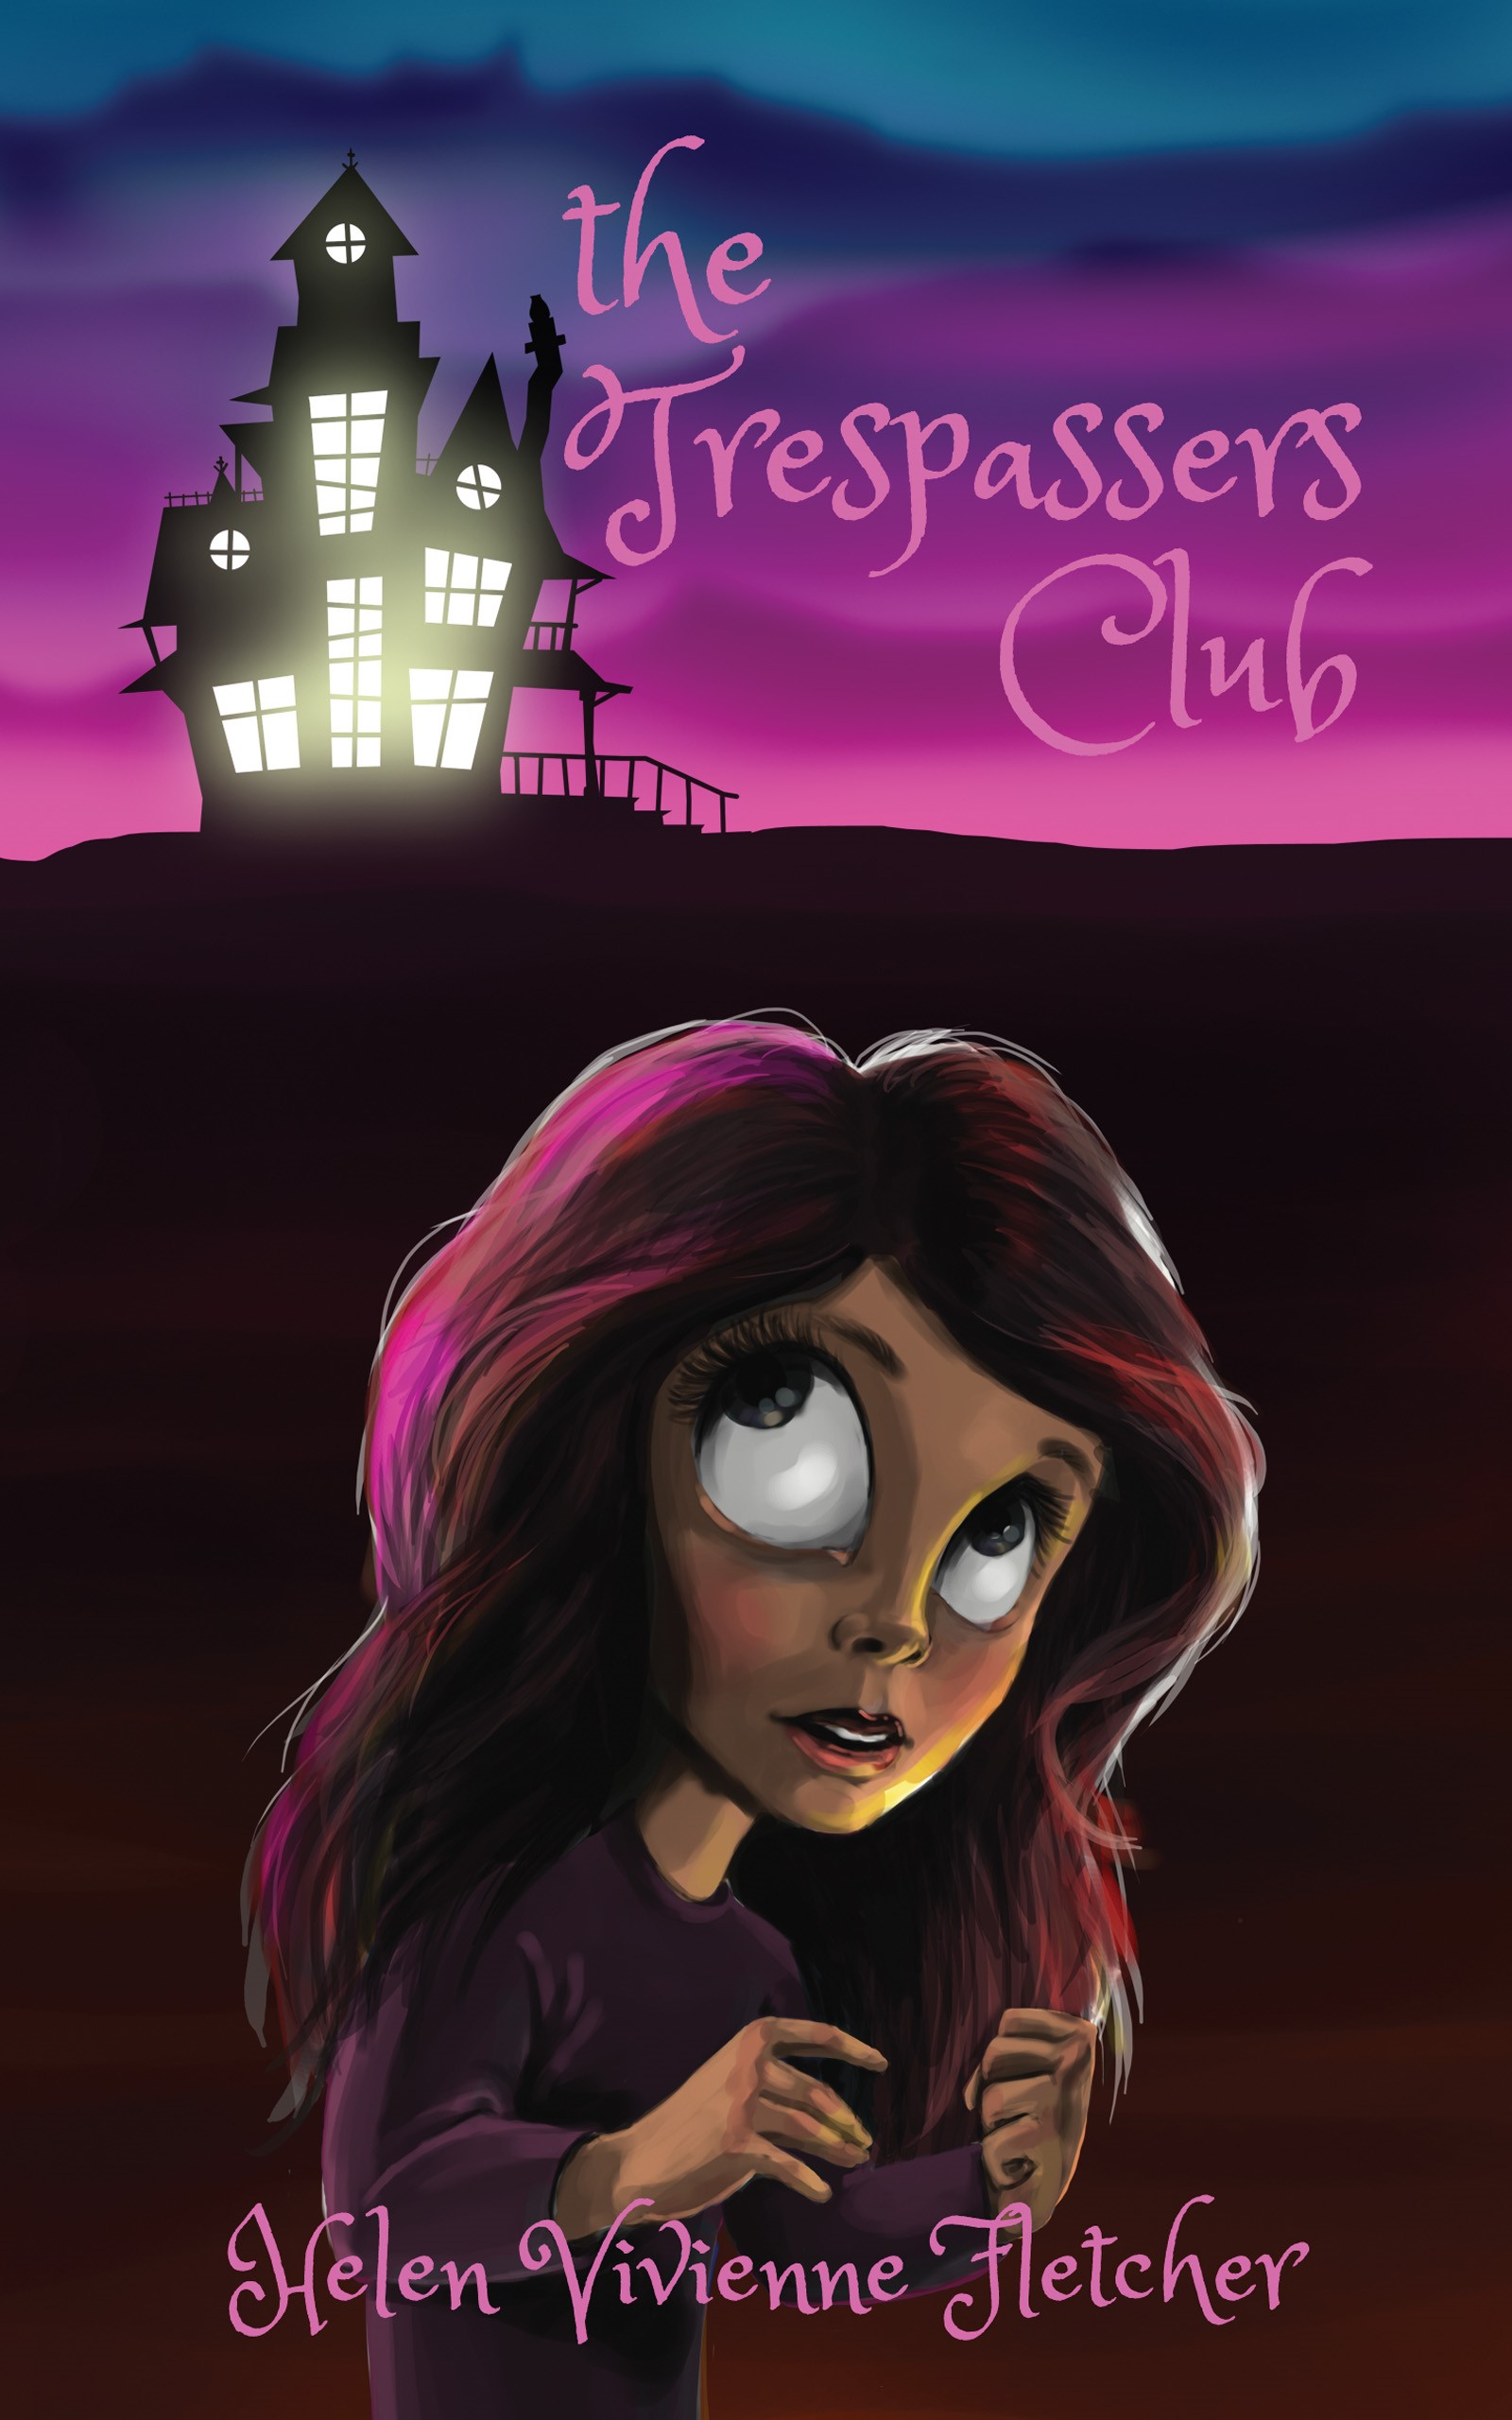 The Trespassers Club - NZ$20   Trespassers Club was just supposed to be a game, but sometimes going places you shouldn't has consequences …